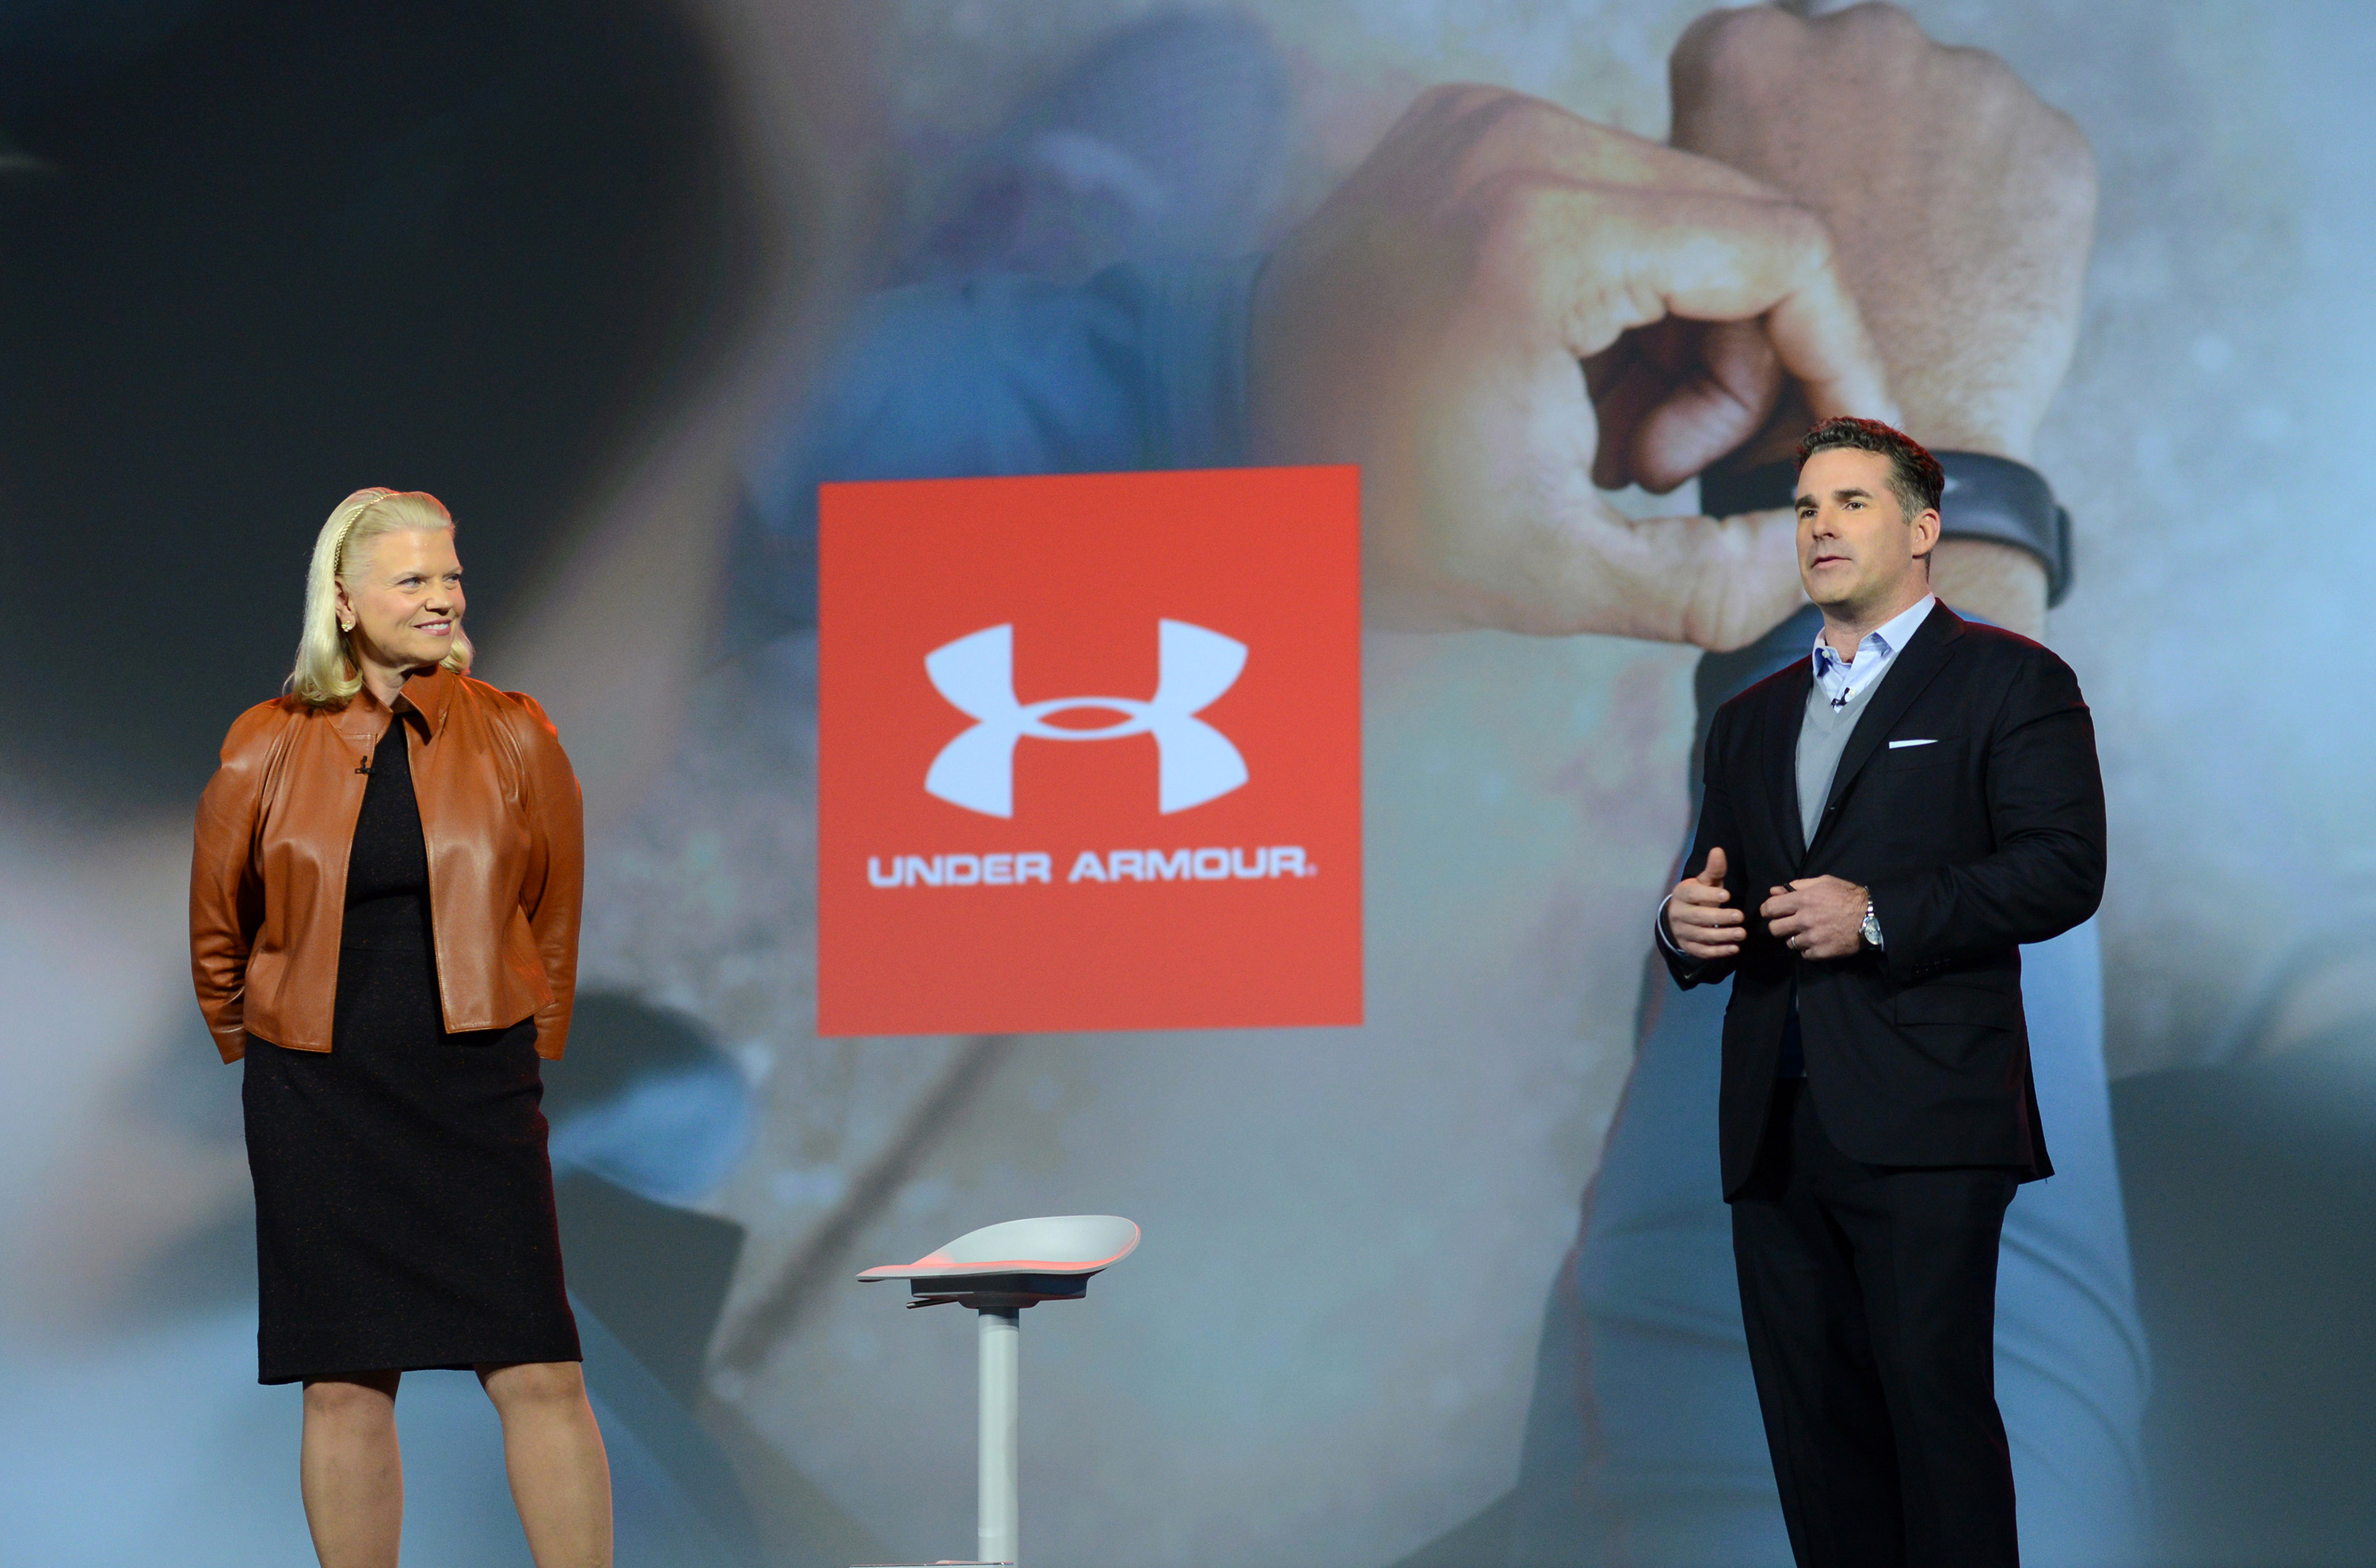 UNDER ARMOUR AND IBM TO TRANSFORM PERSONAL HEALTH AND FITNESS, POWERED BY IBM WATSON